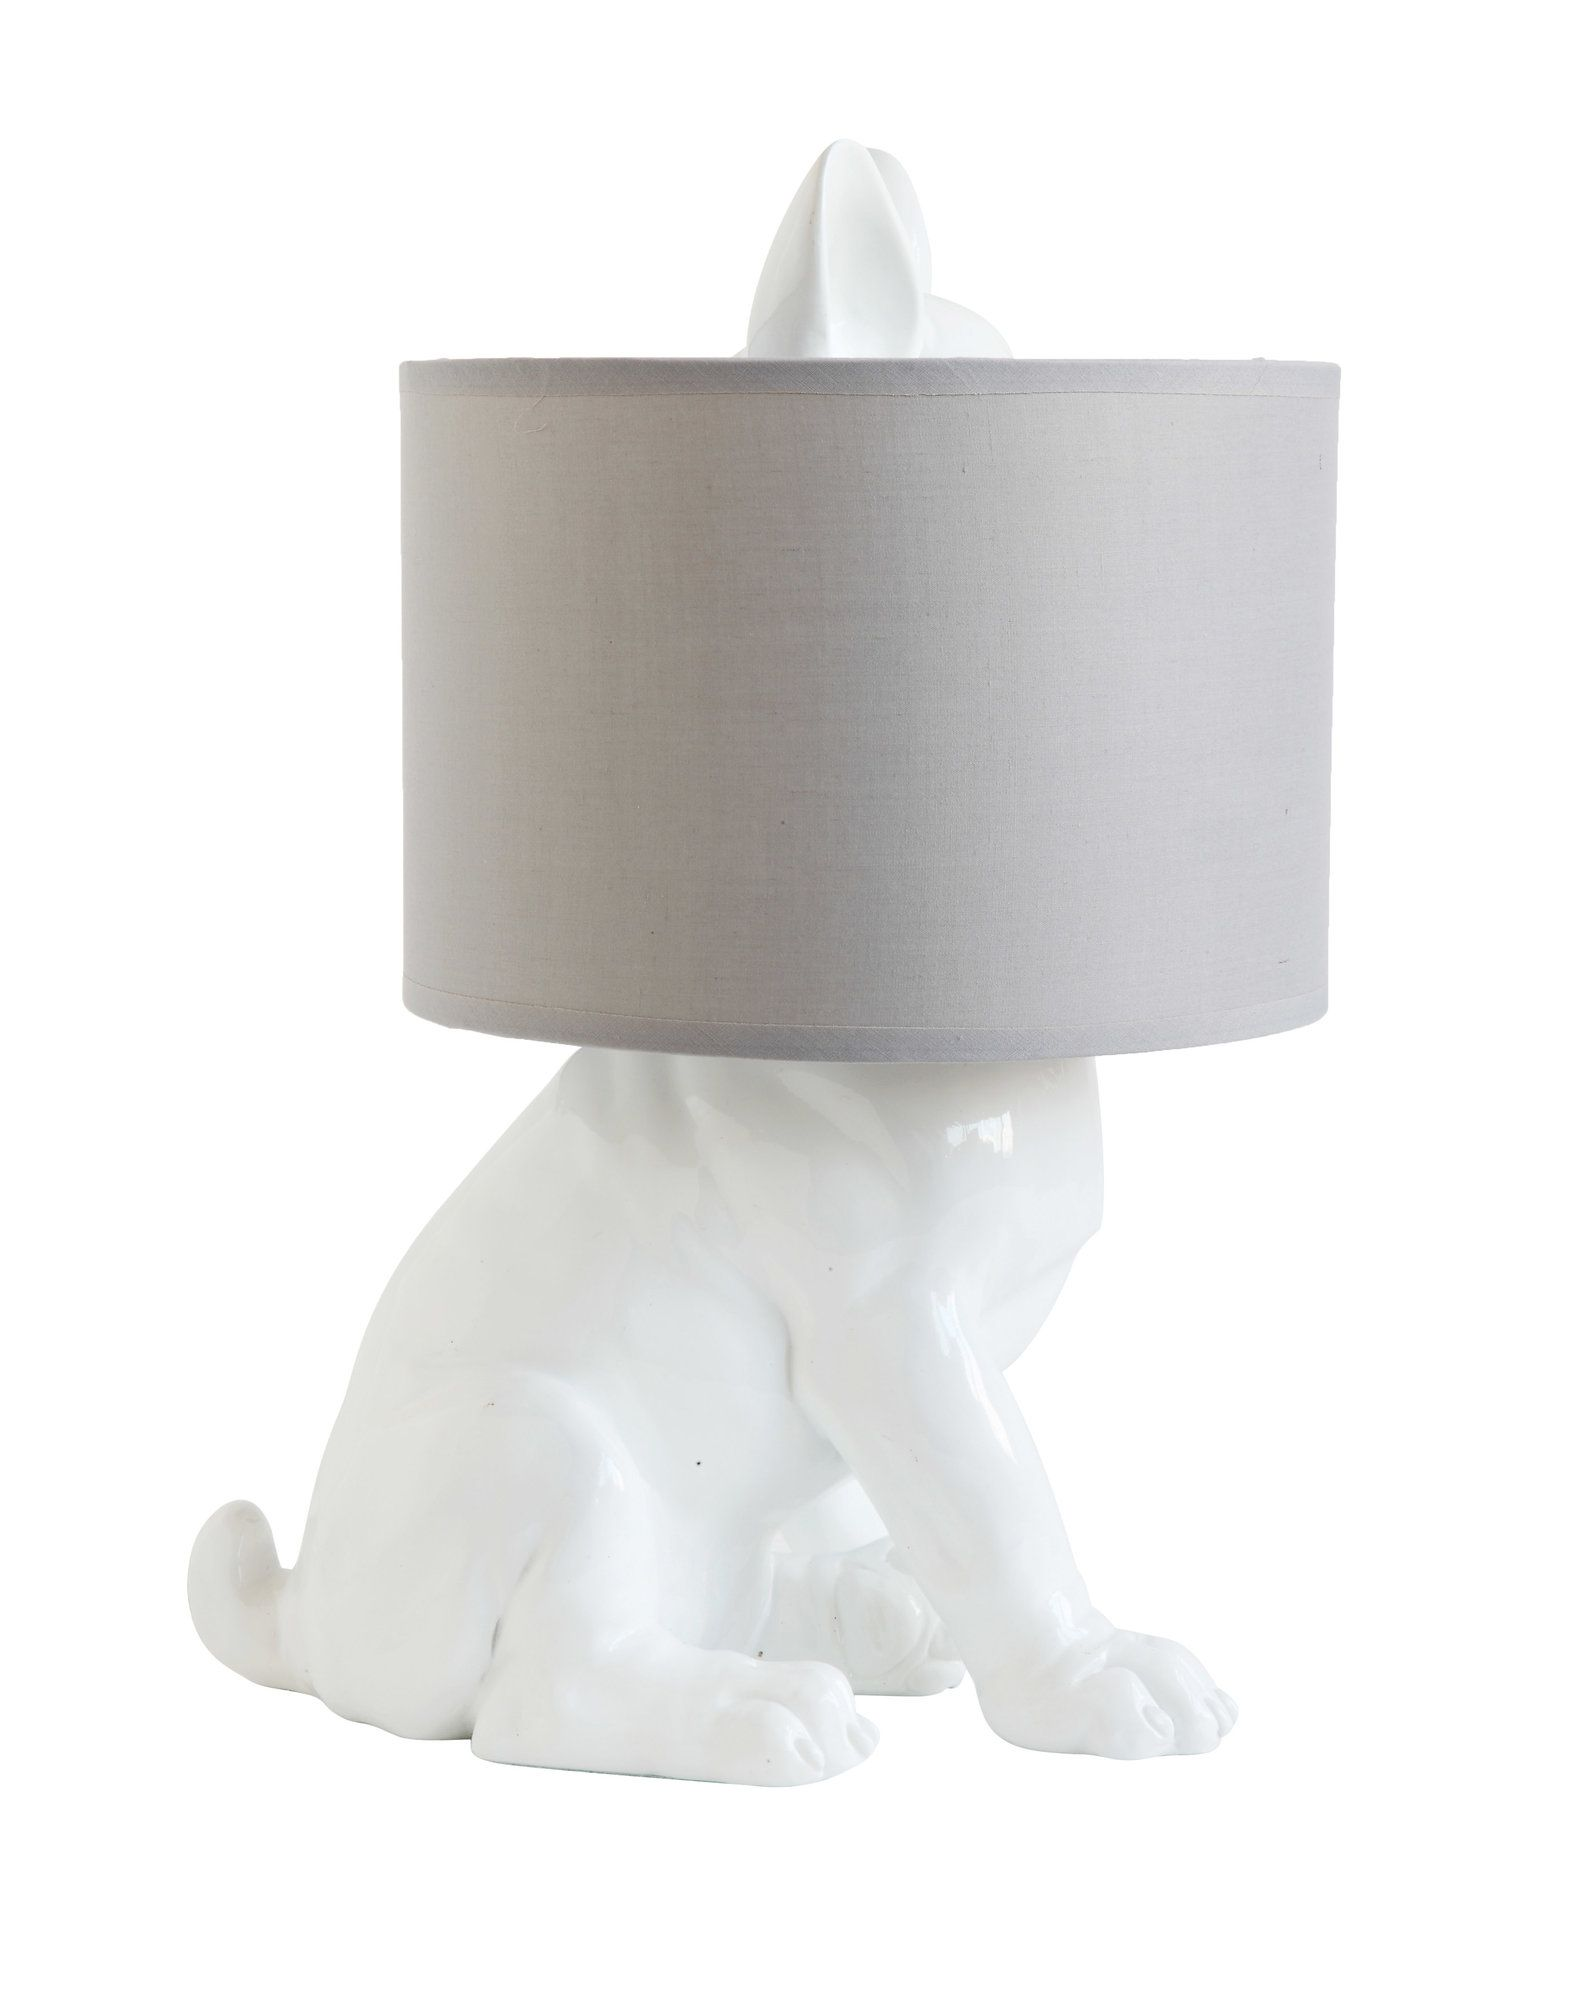 Canyon grove resin dog 1752 table lamp products pinterest creative co op canyon grove resin dog table lamp geotapseo Gallery